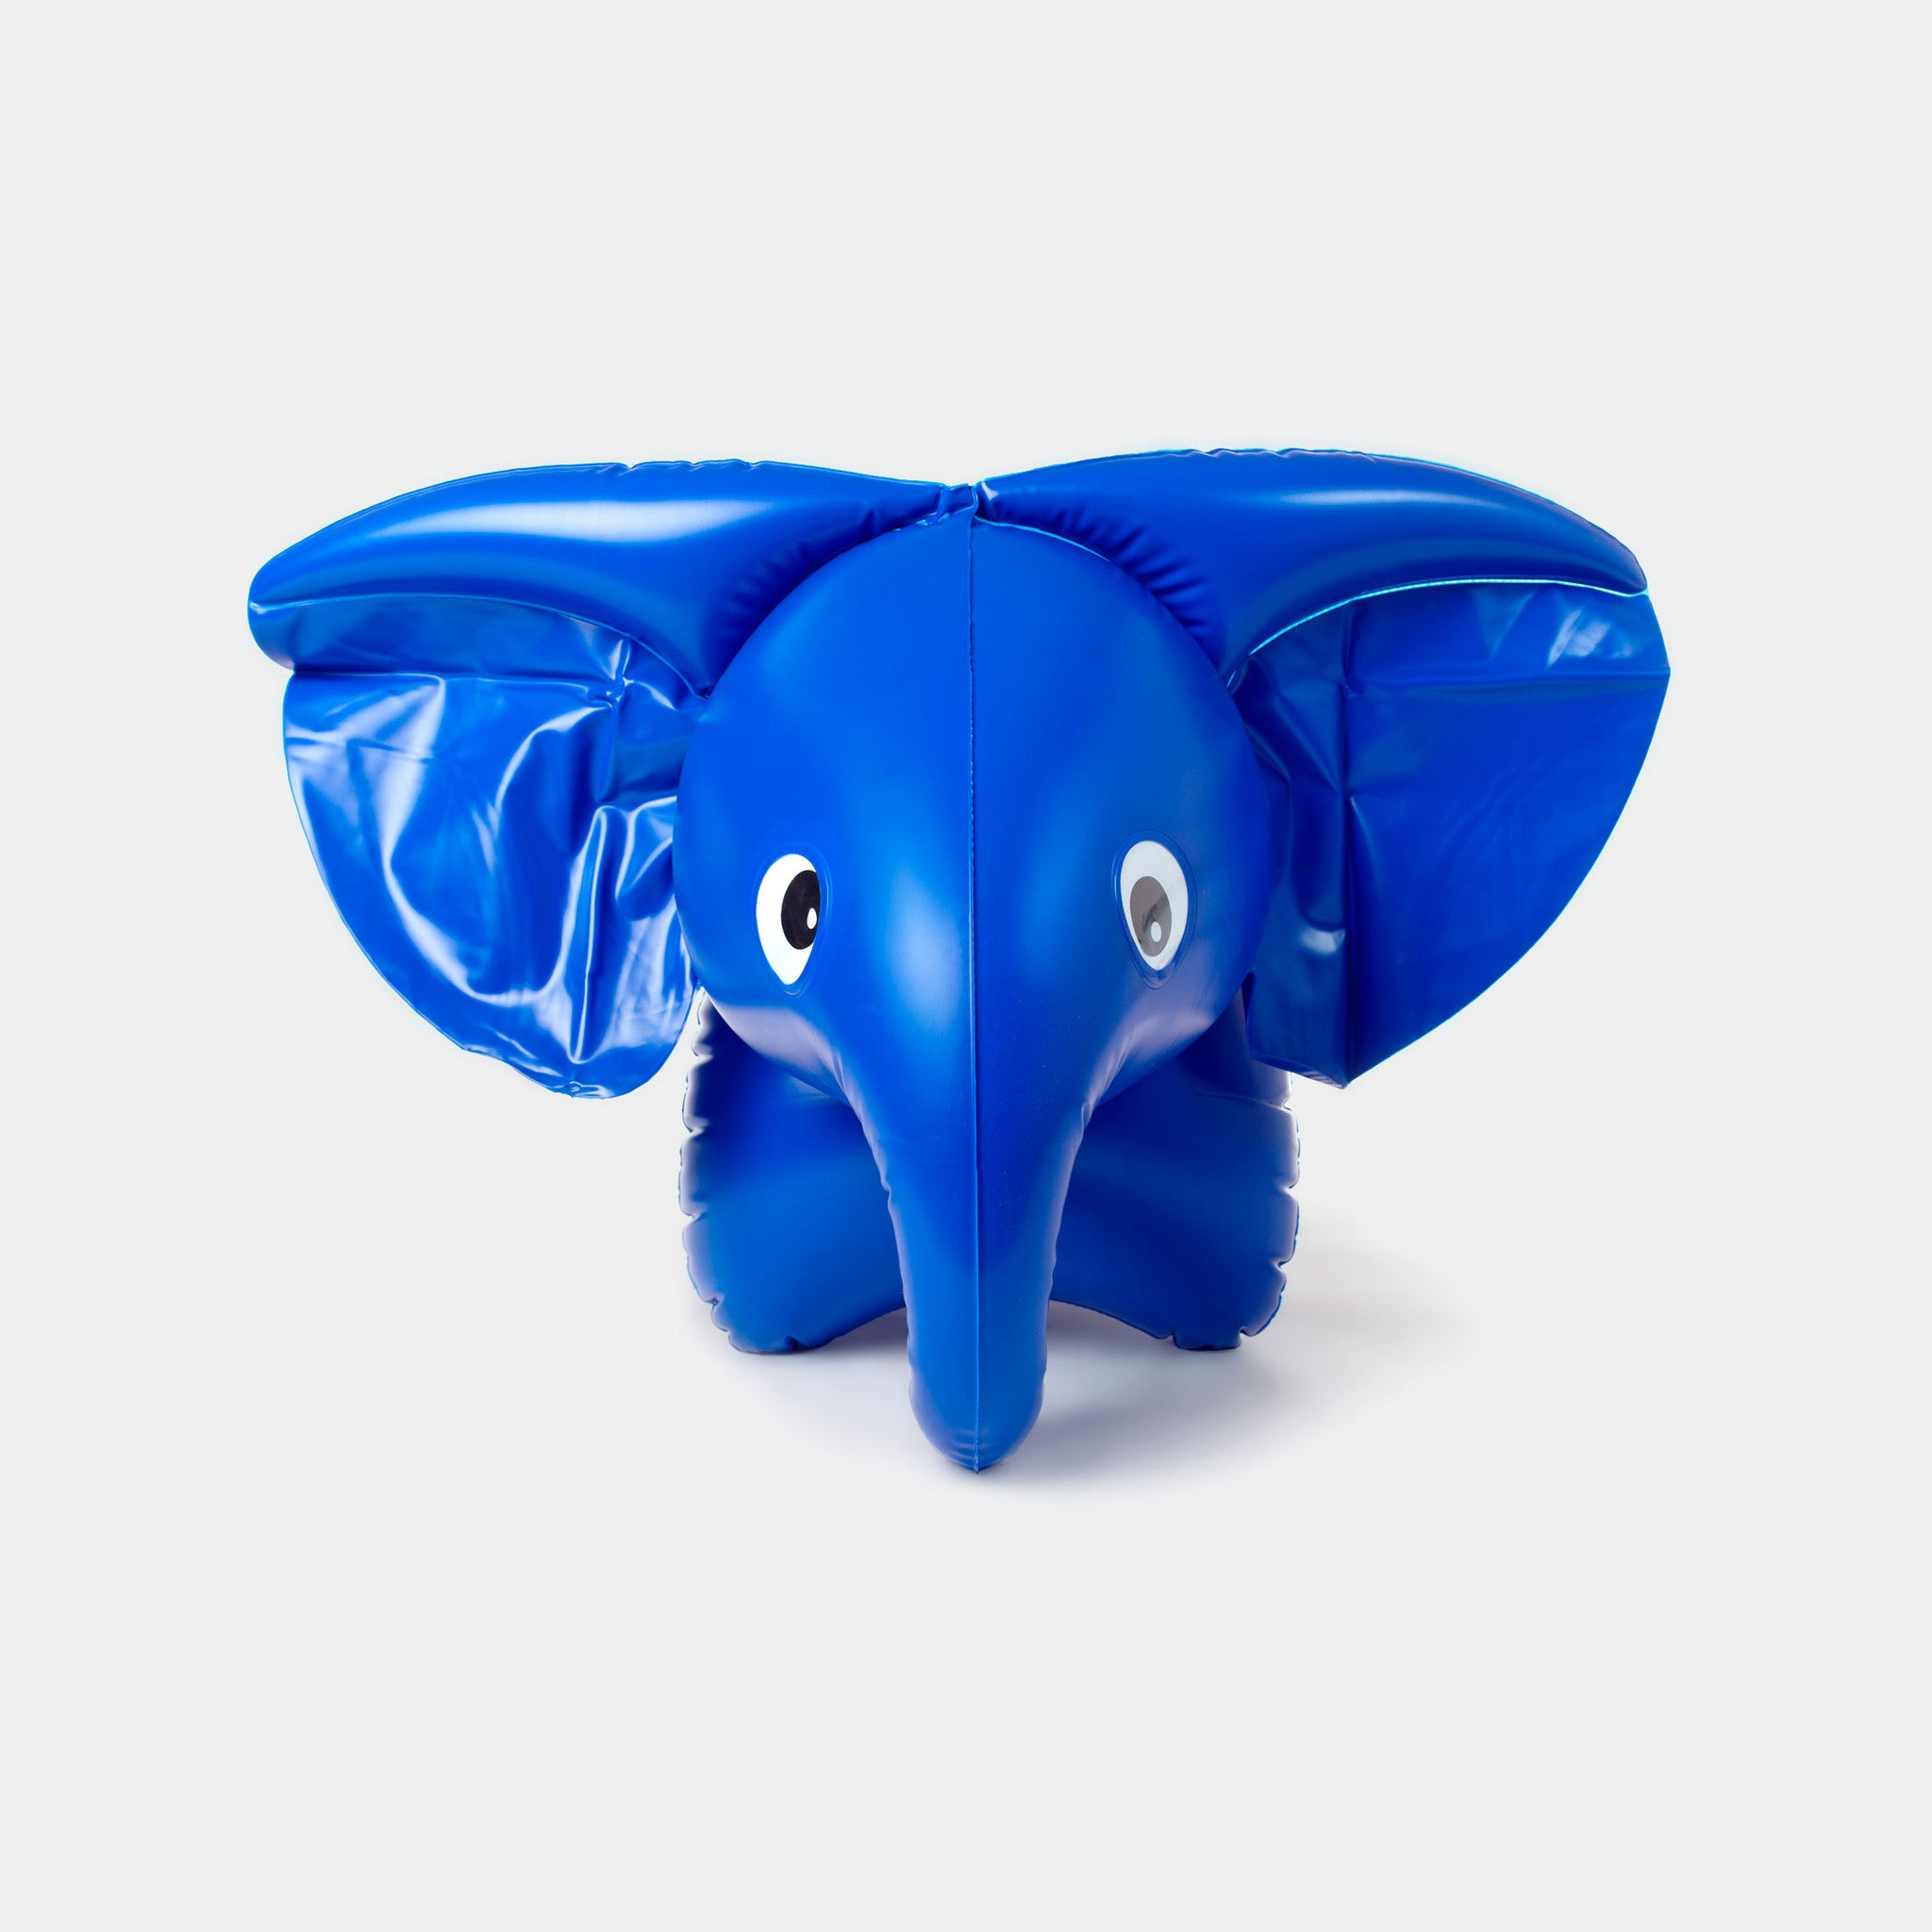 This beautiful blue inflatable elephant is a Czech design classic from the 1970s. It is designed by the legendary Czech toy designer Libuše Niklová and is exhibited in MoMA's 'Century of the Child'.